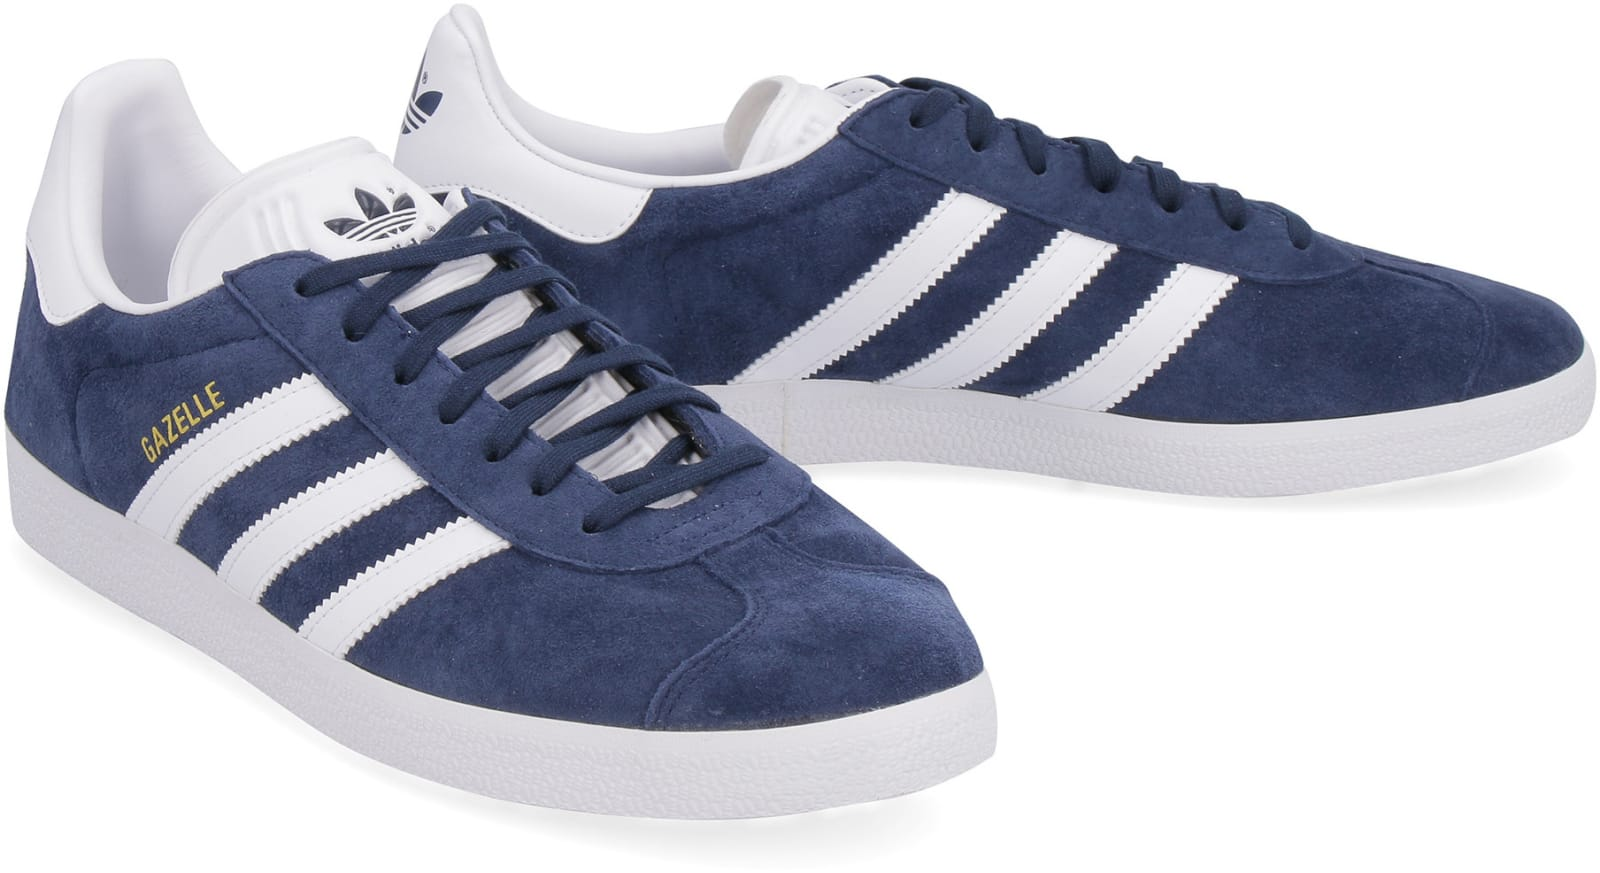 Adidas Low Adidas Low Top Sneakers Gazelle Top Gazelle Sneakers Adidas A54jLR